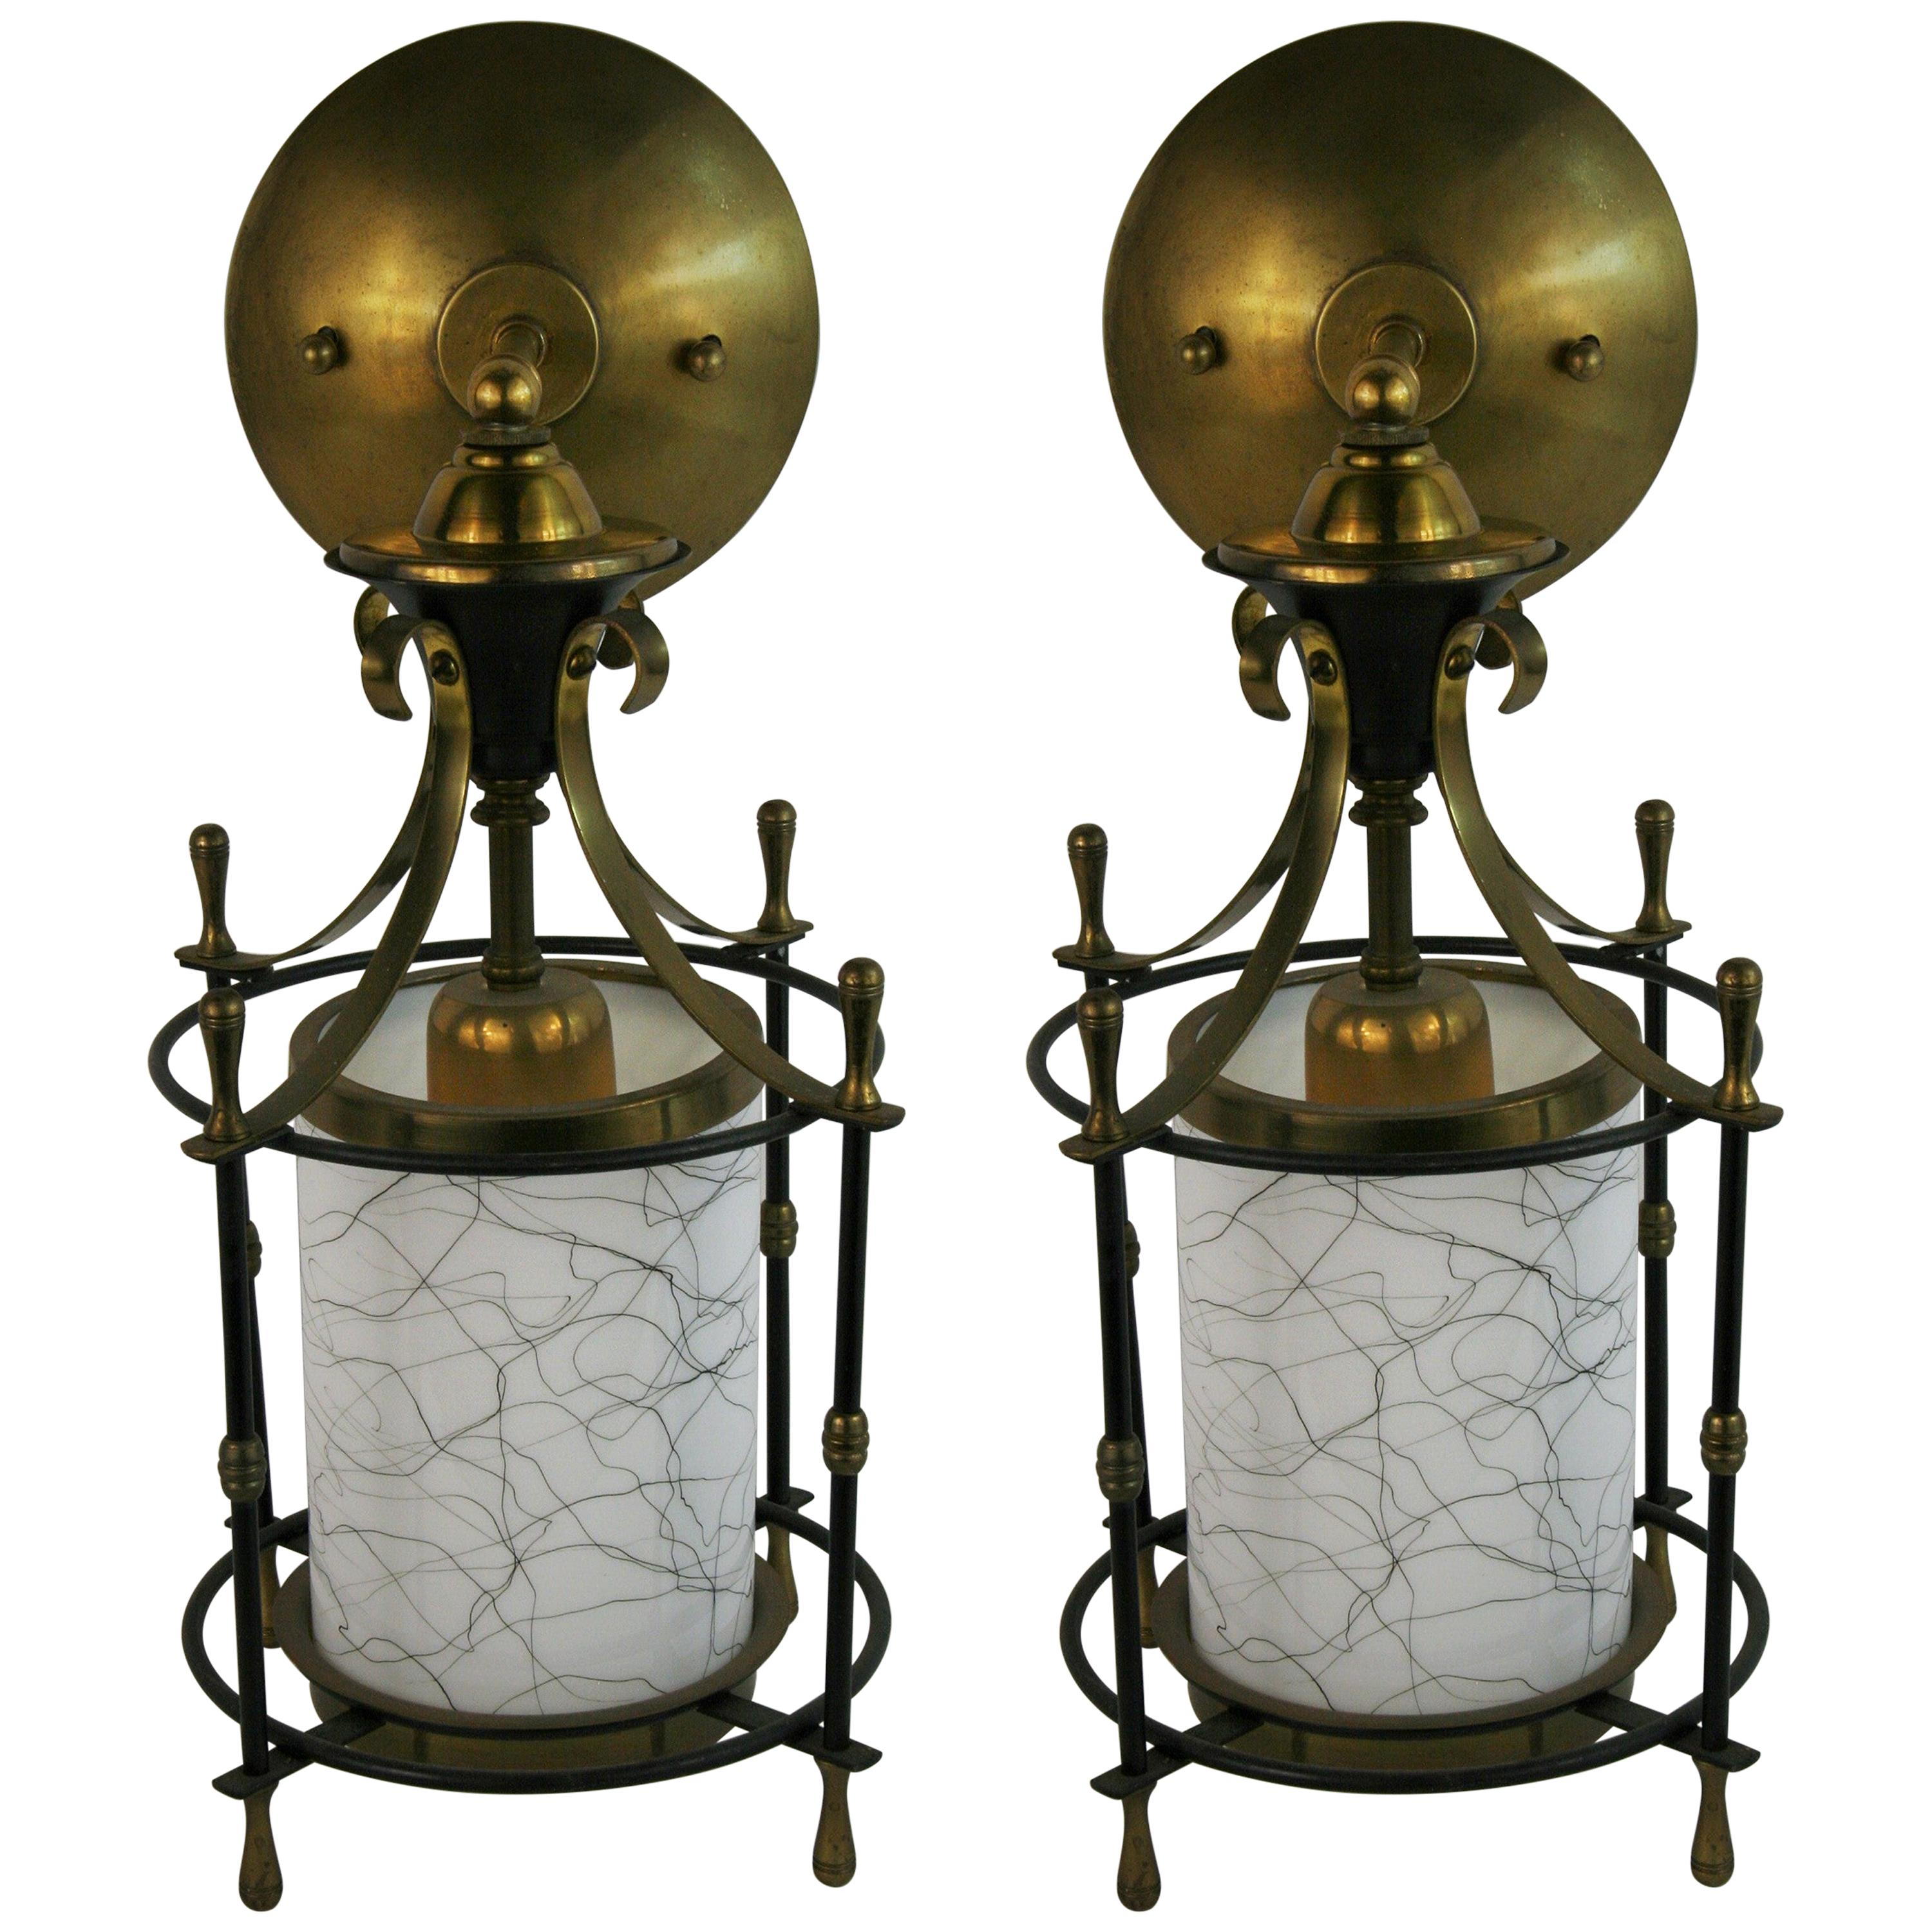 Pair of French Midcentury Lantern Sconces